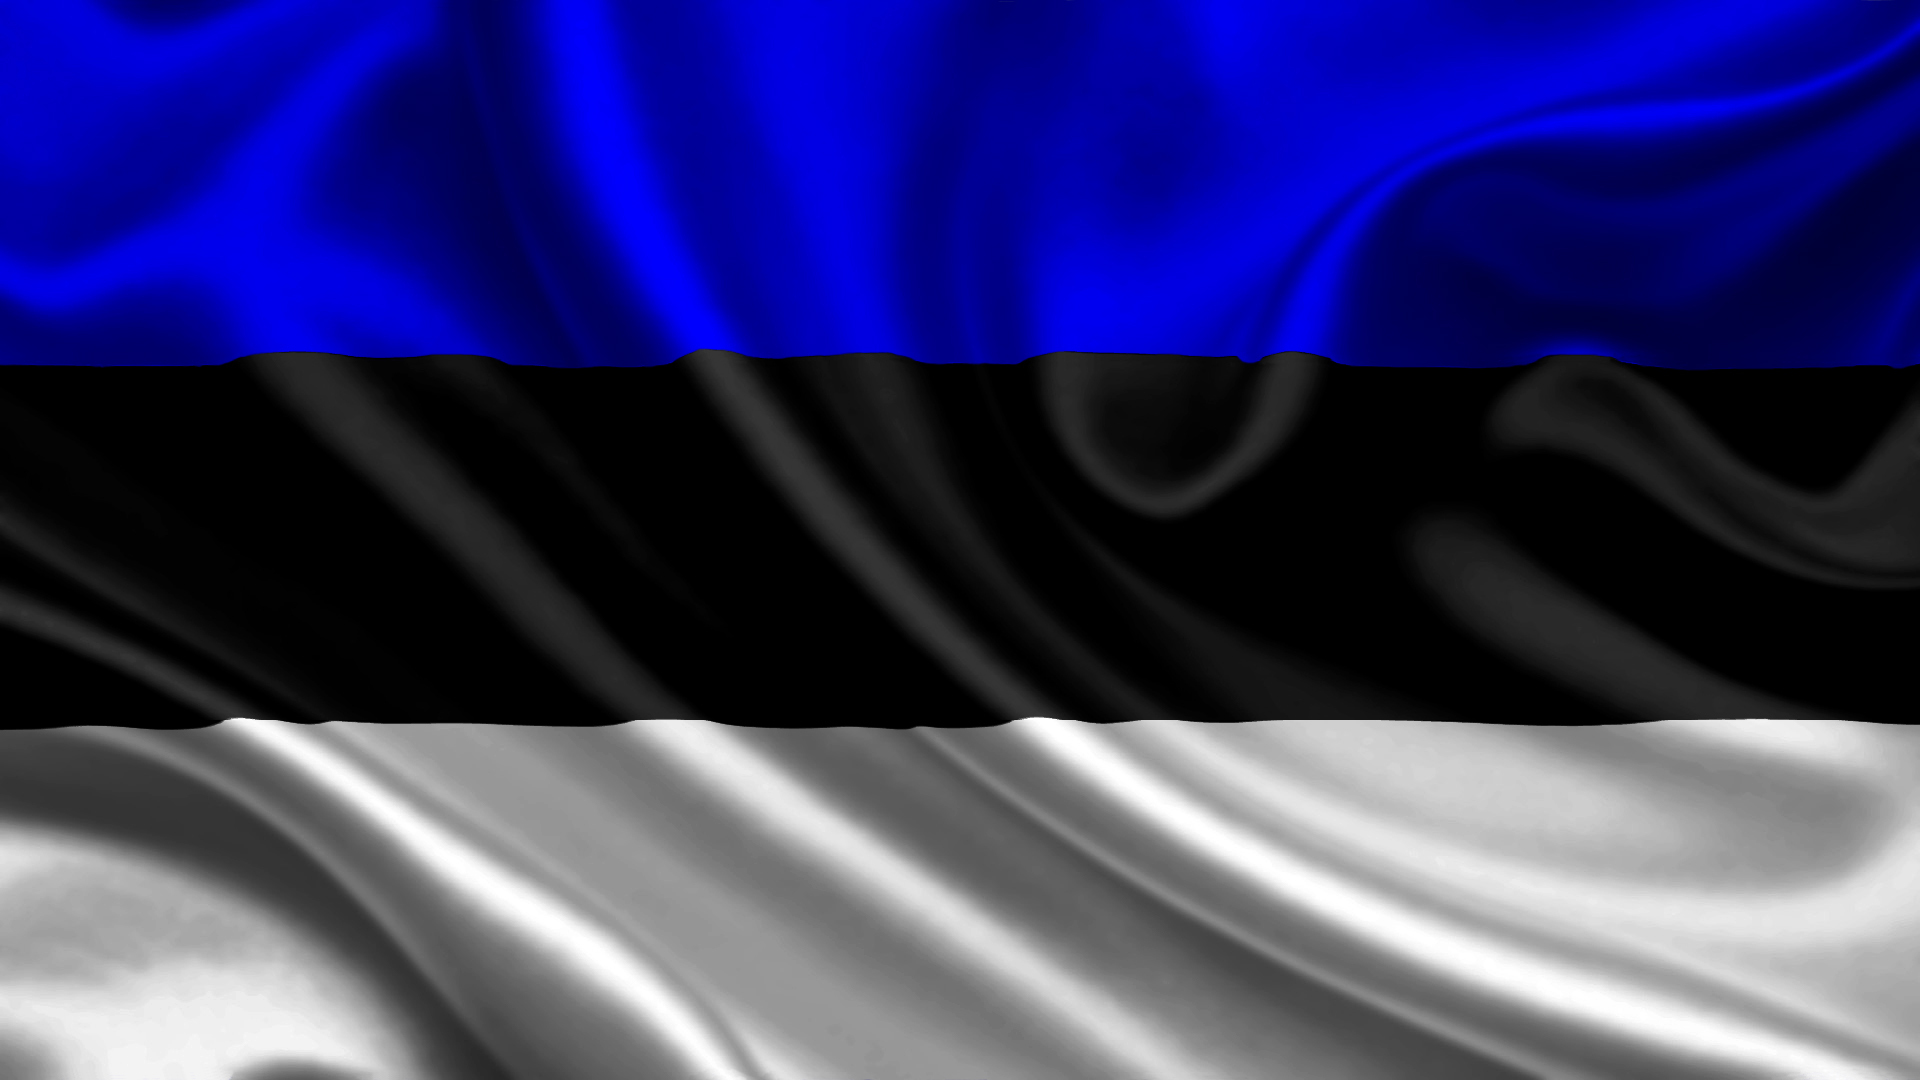 5 HD Estonia Flag Wallpapers - HDWallSource.com